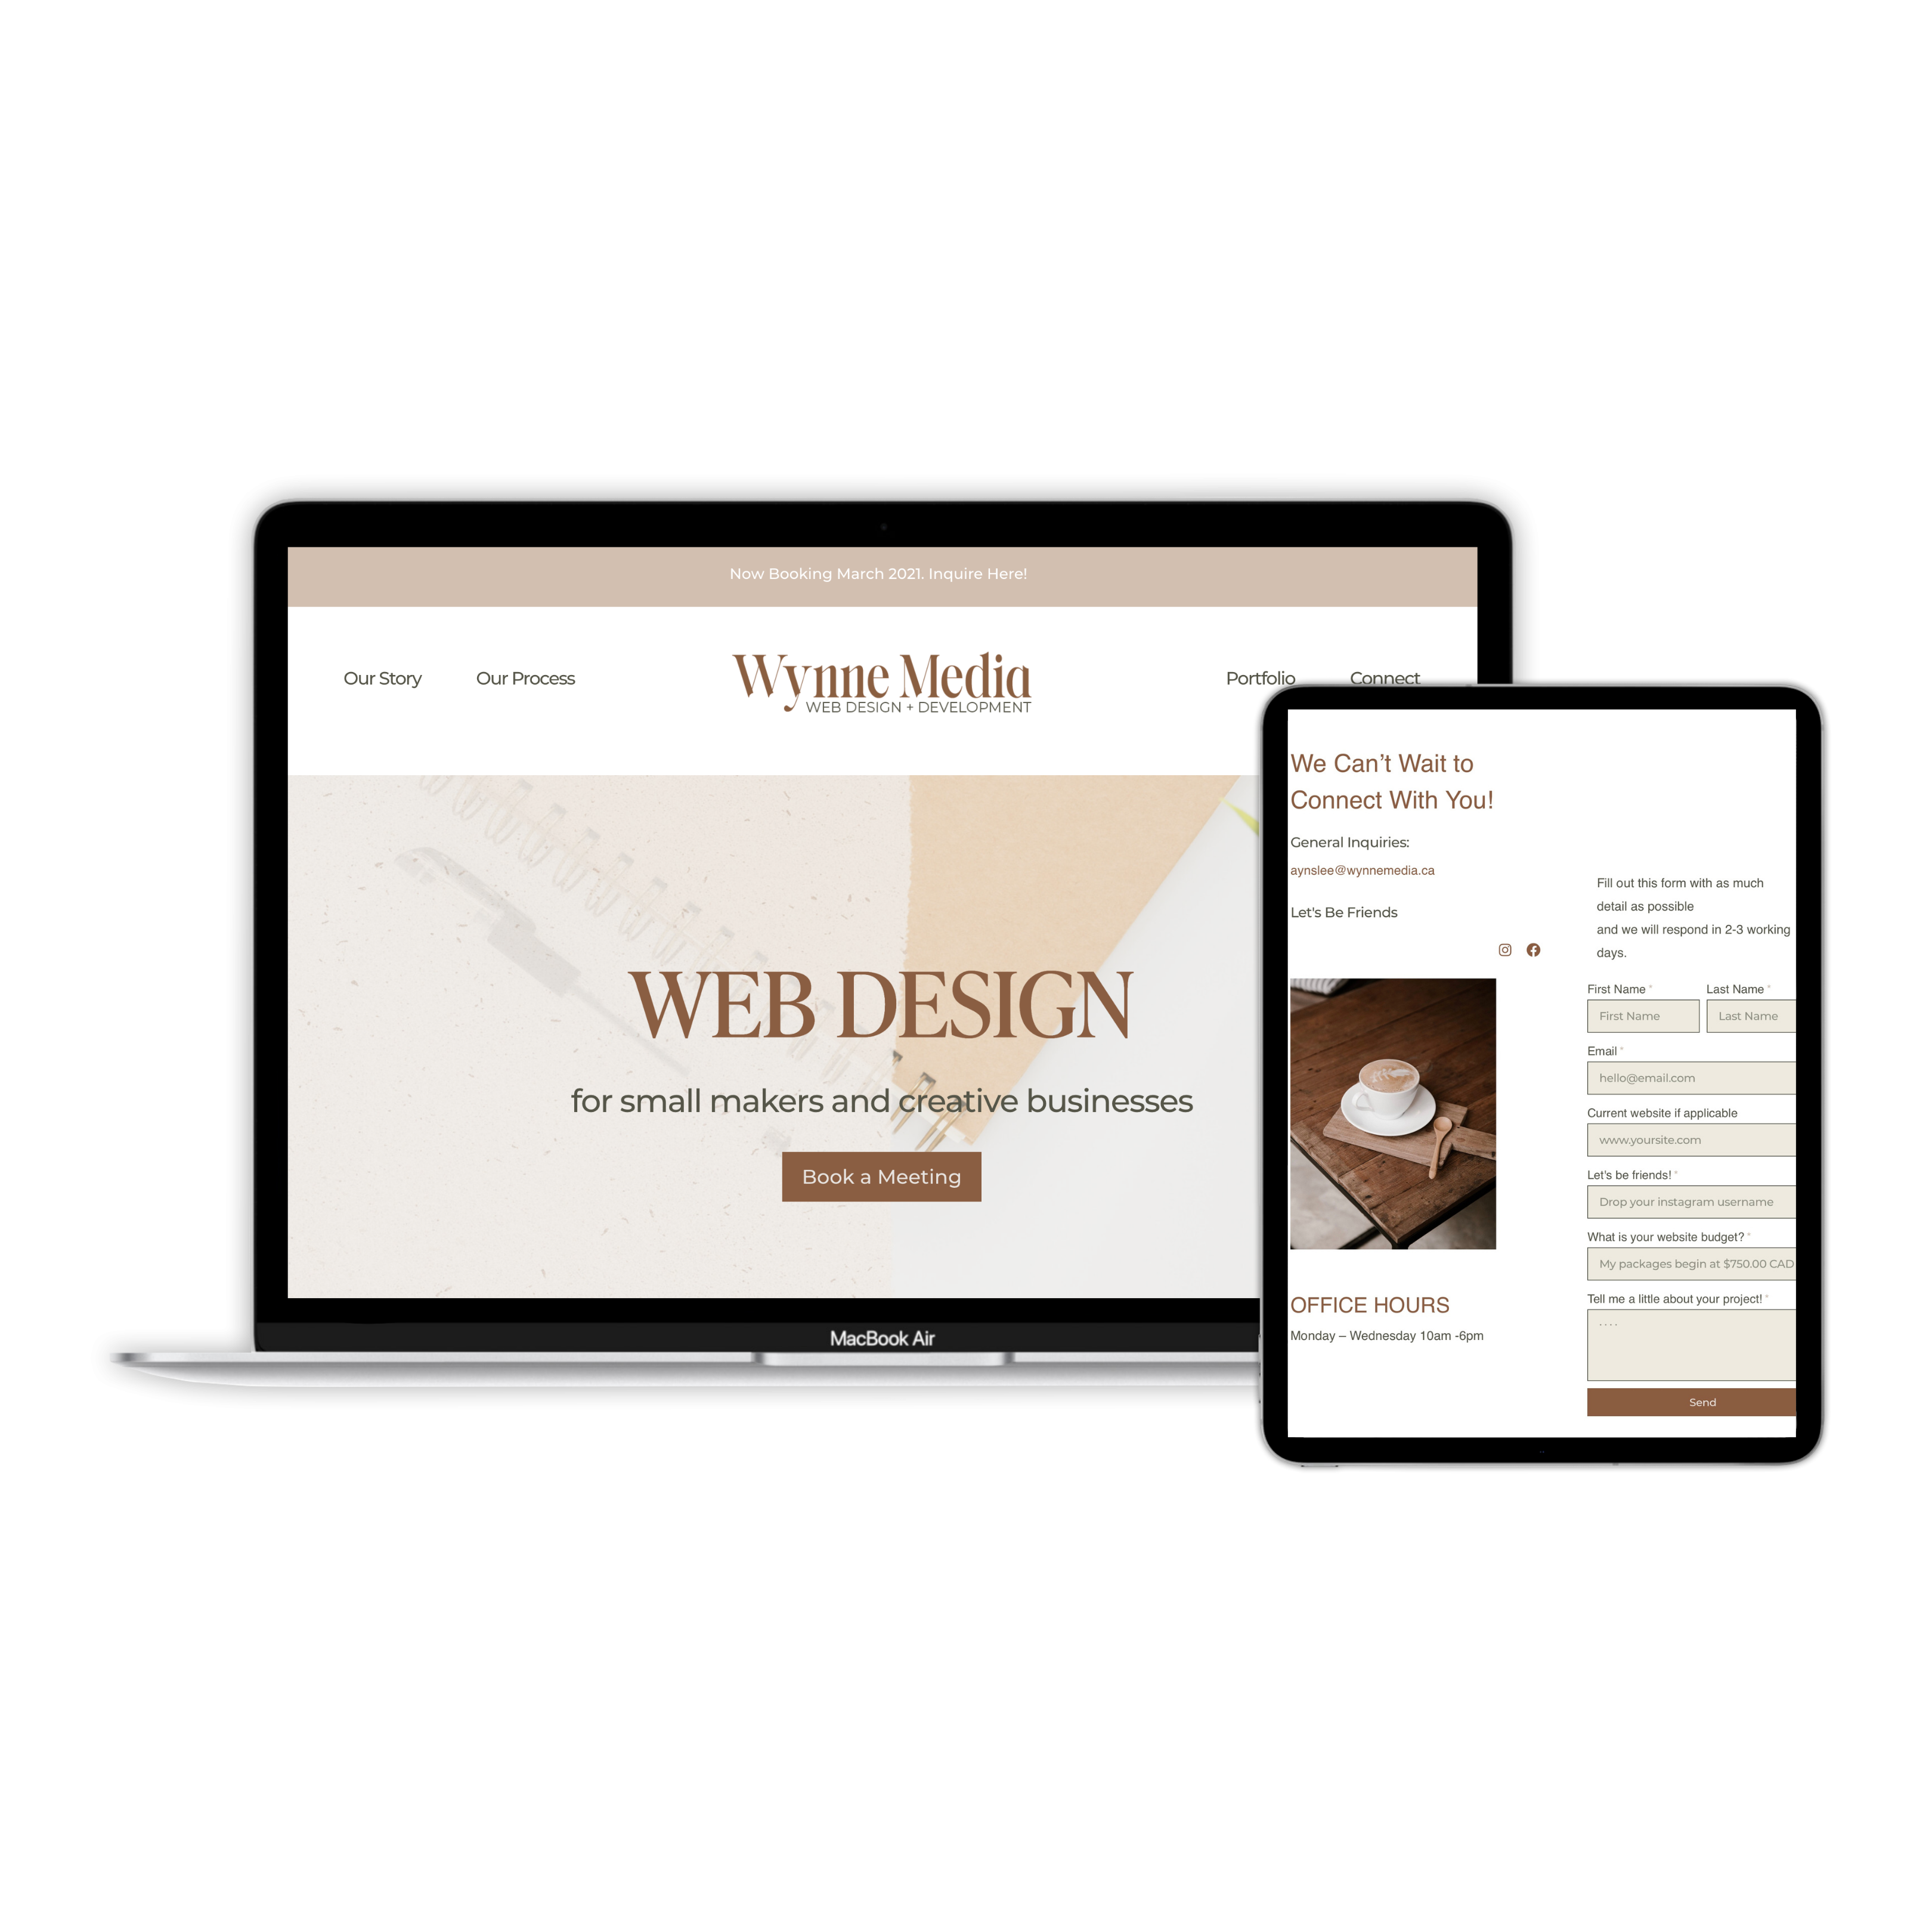 Wynne Media responsive website design shown on a macbook laptop and ipad.